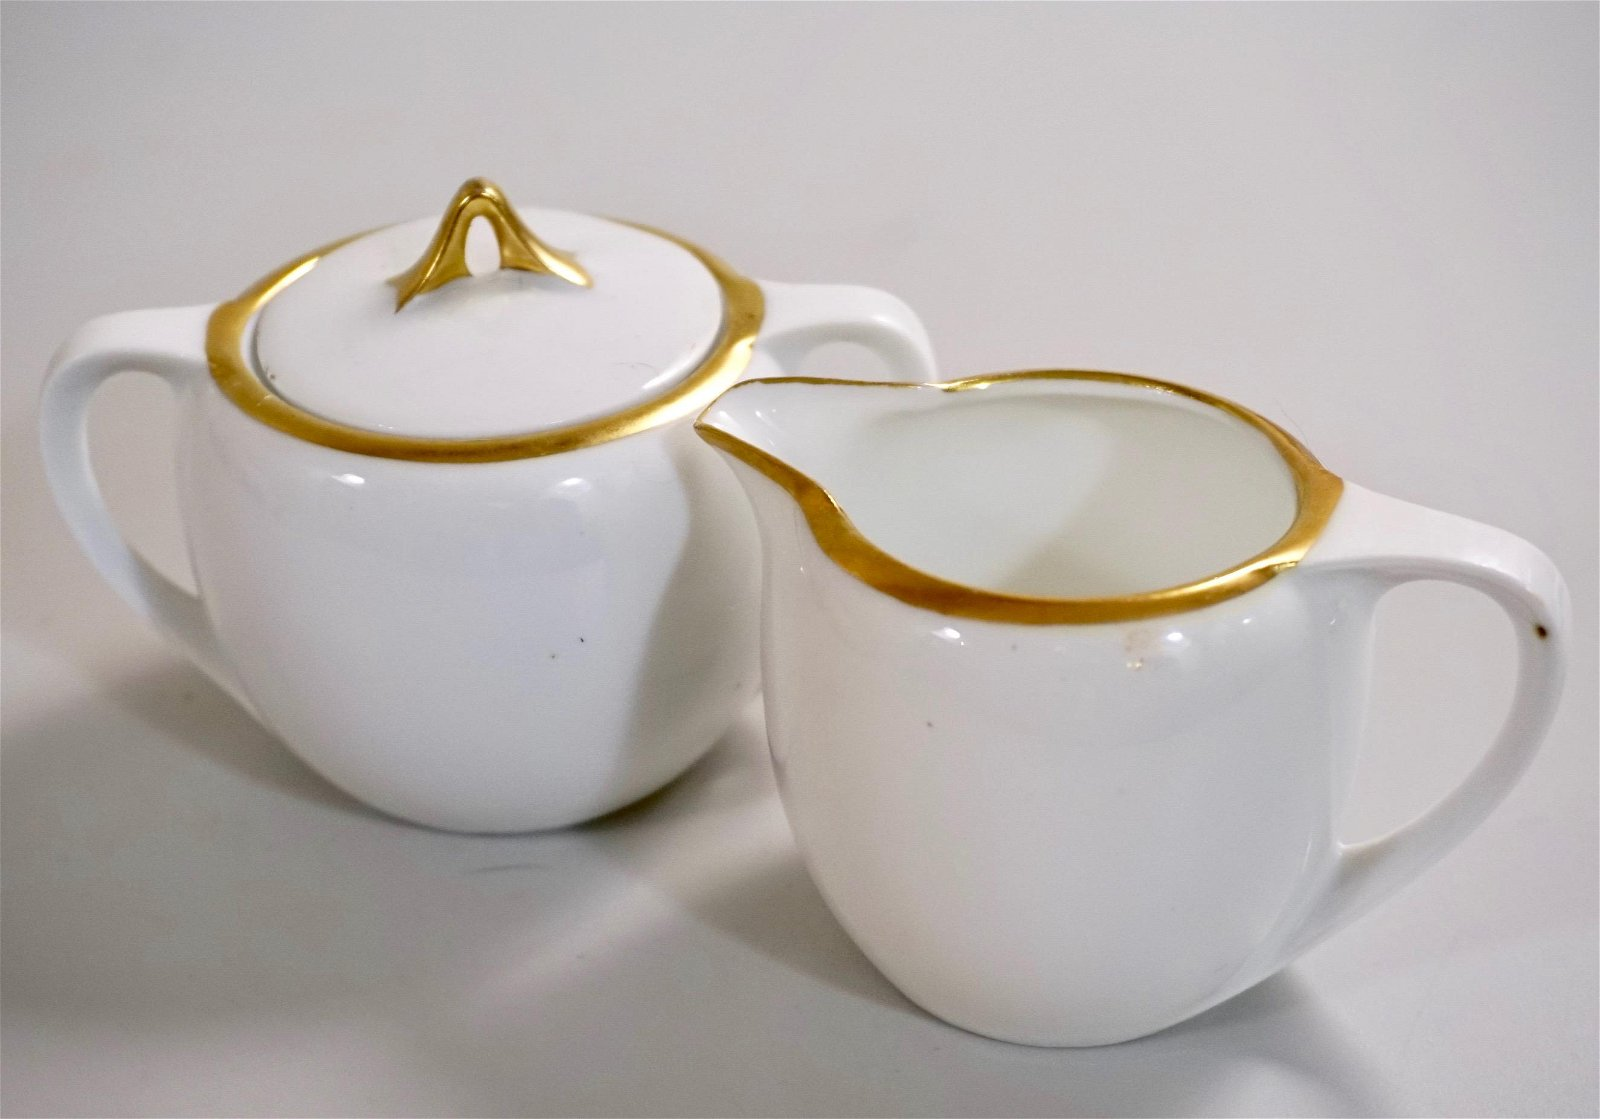 German White Porcelain Sugar Creamer Set With Gold Rim